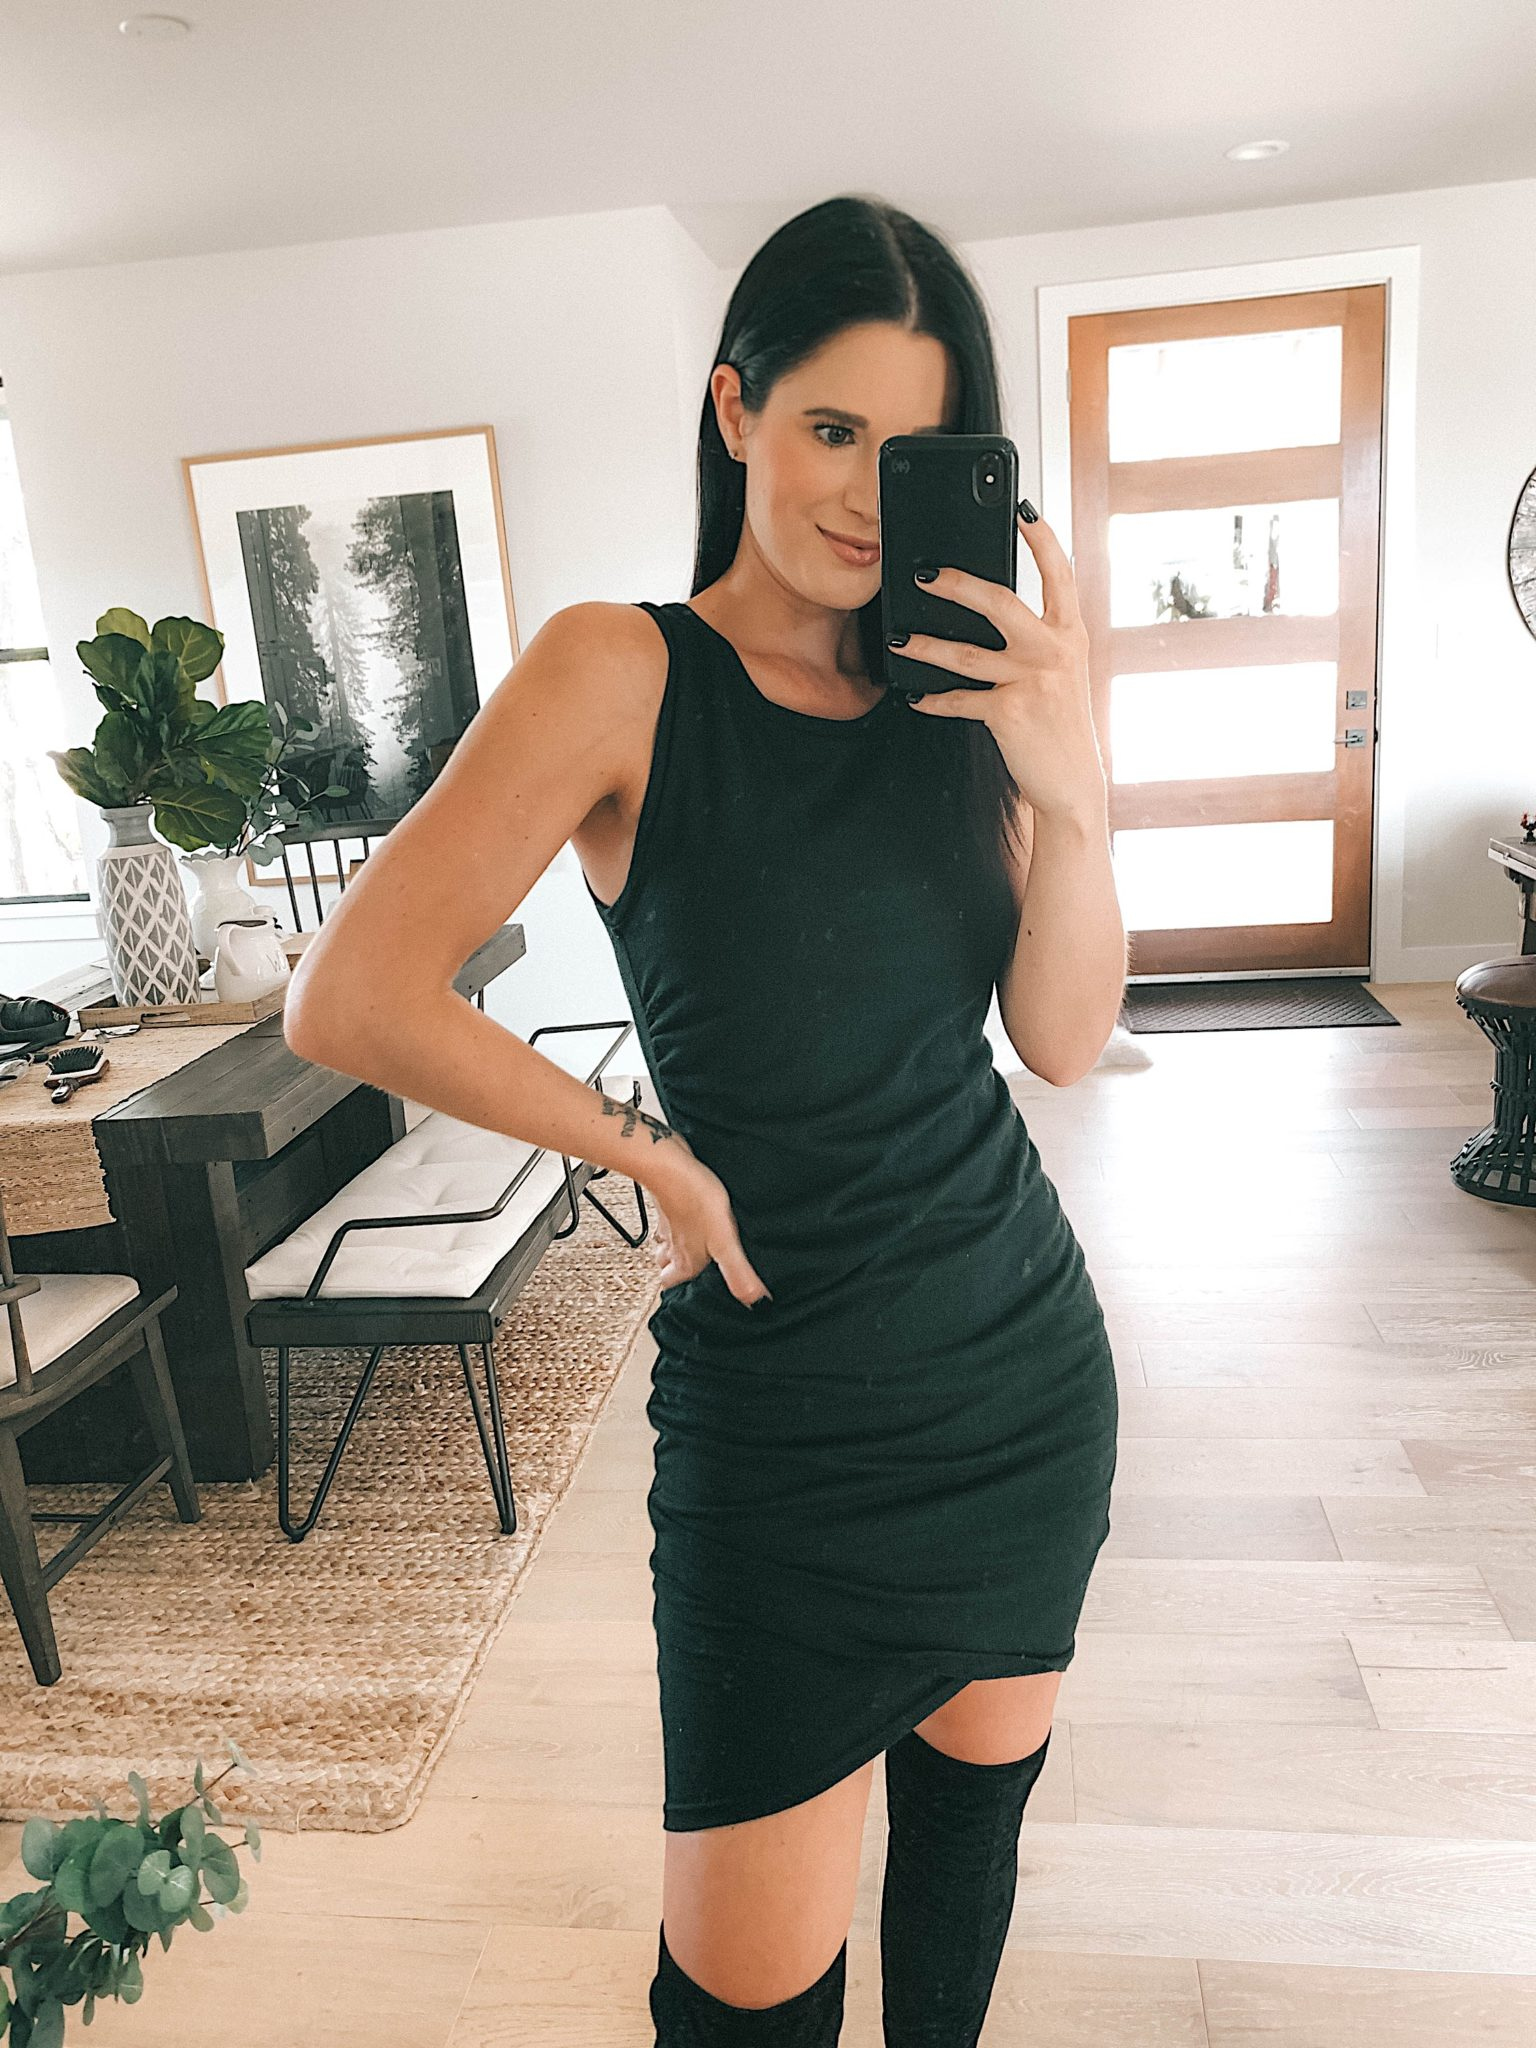 Sale Alert - Two Must Have Versatile Dresses for Summer by popular Austin fashion blog, Dressed to Kill: image of a woman wearing a black Leith Ruched Body-Con Tank Dress